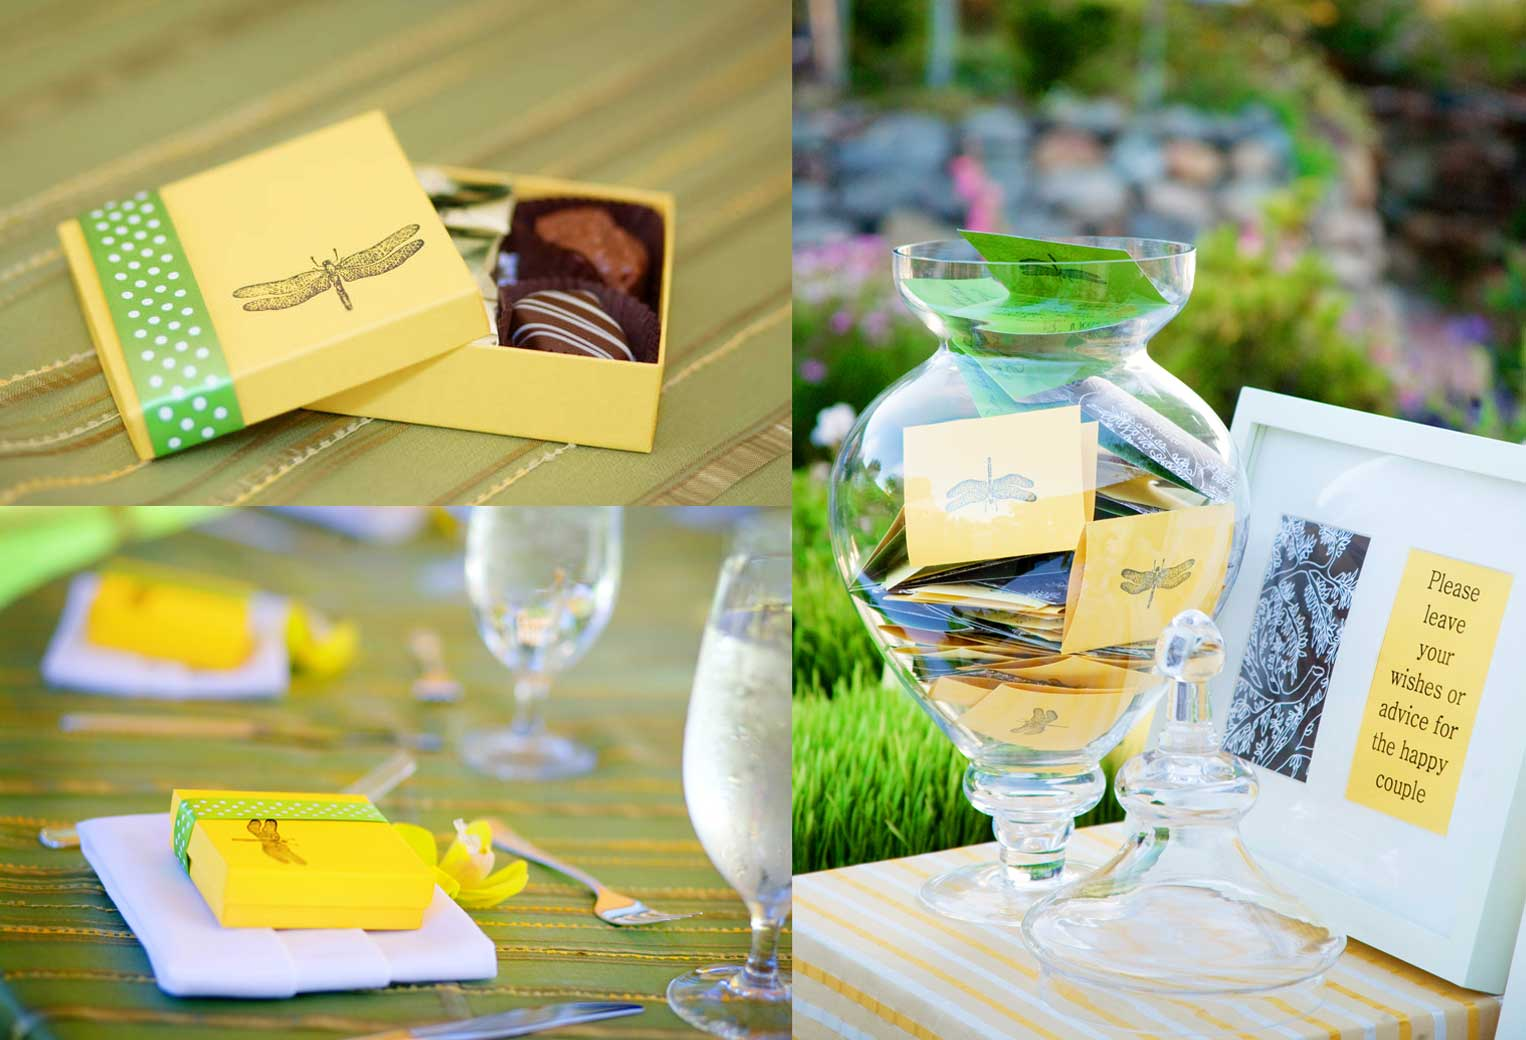 chocolate favors and guest wishes